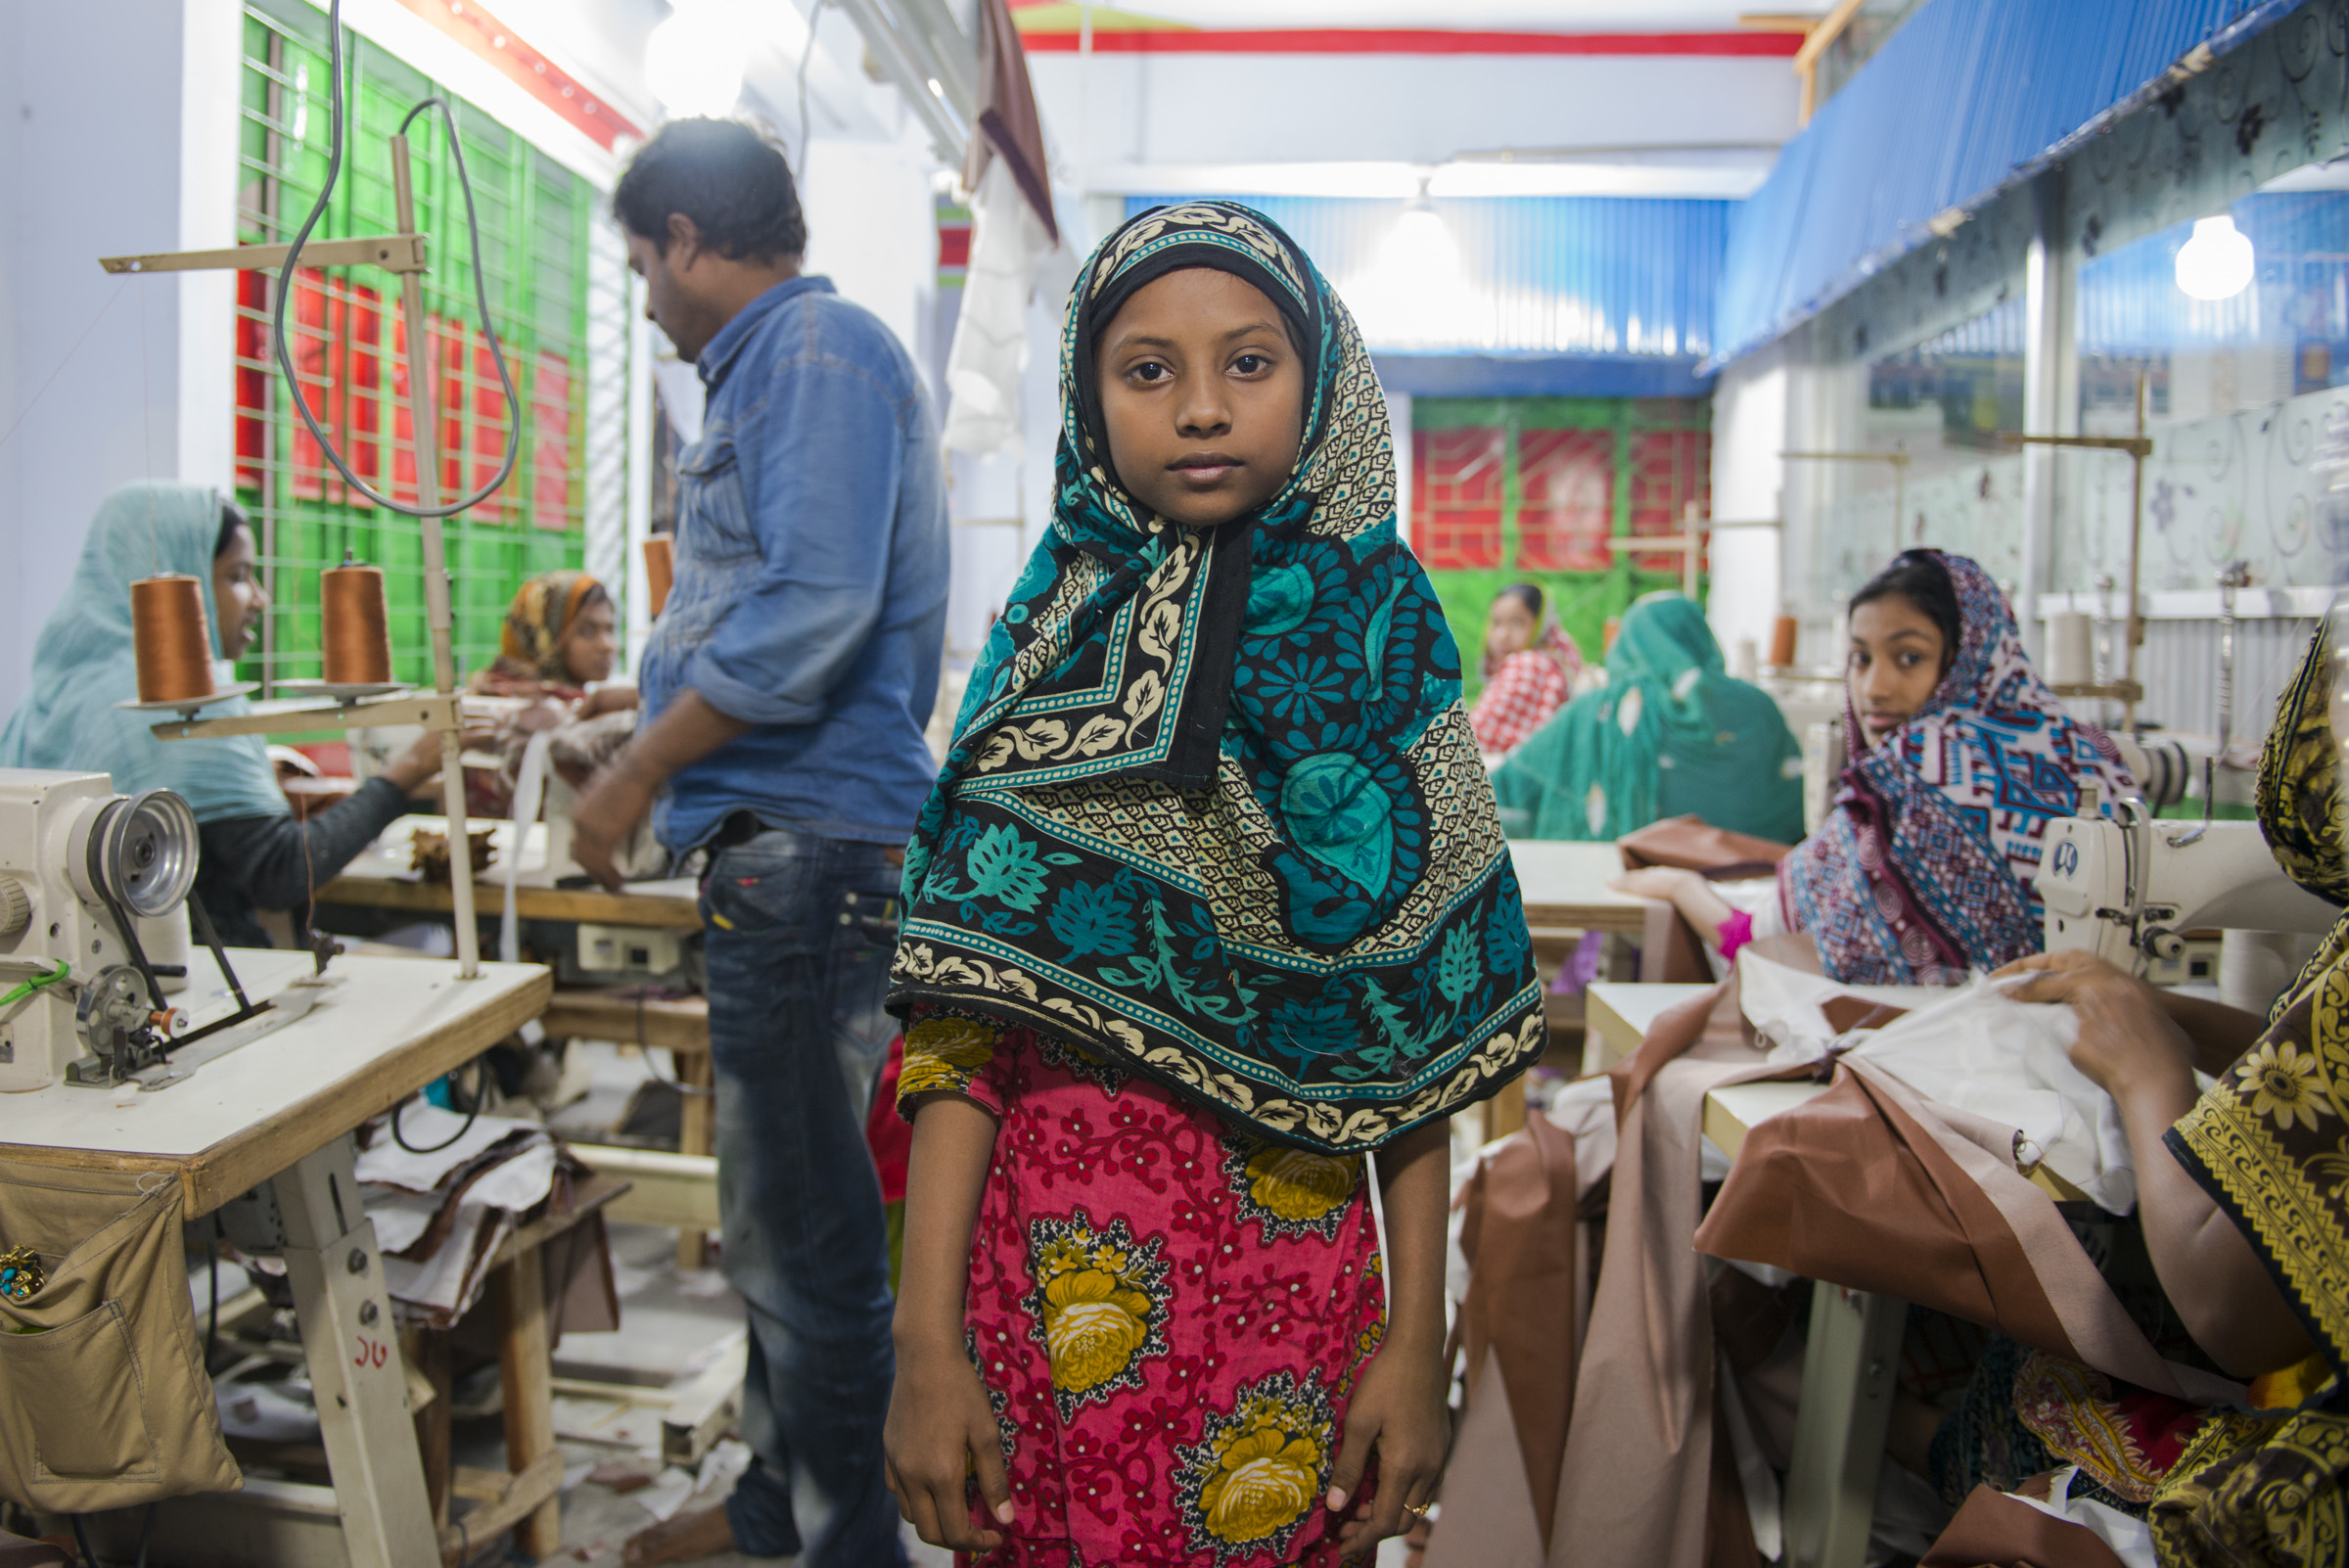 A young garment worker. The common activities for children at informal factories are: embroidery work, cutting/trimming, cutting thread, printing, making labels/tags/stickers, packaging, machine cleaning, weaving, hand stitching, dyeing, decorative work (such as adding sequins, decorative stones), button stitching, knitting, washing, and button coloring. Picture: Claudio Montesano Casillas.